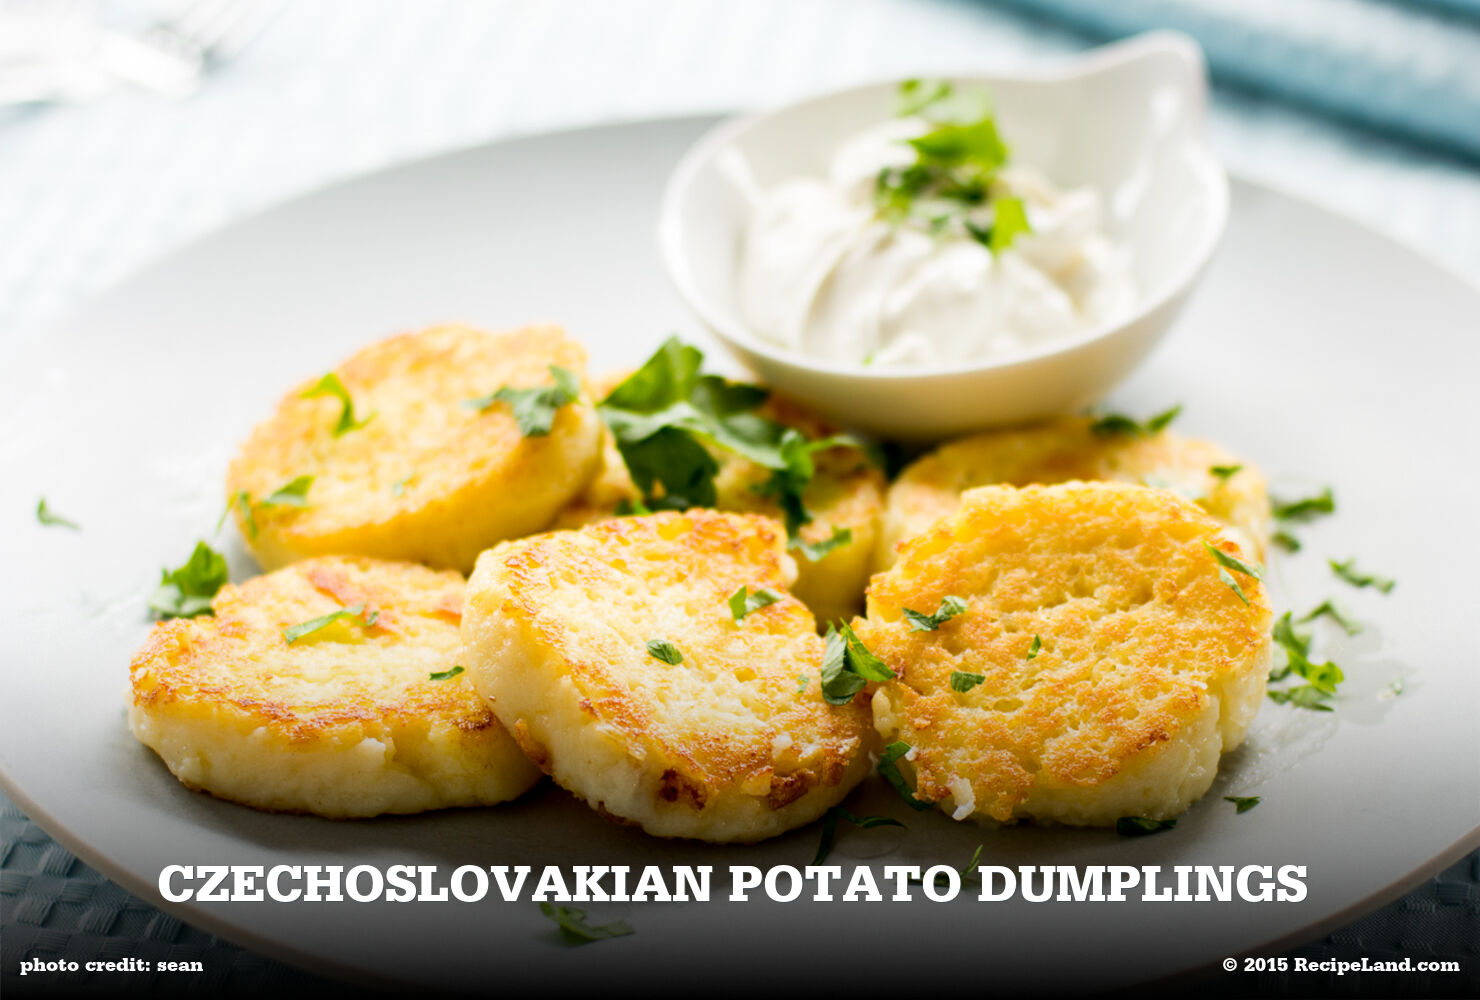 Czechoslovakian Potato Dumplings